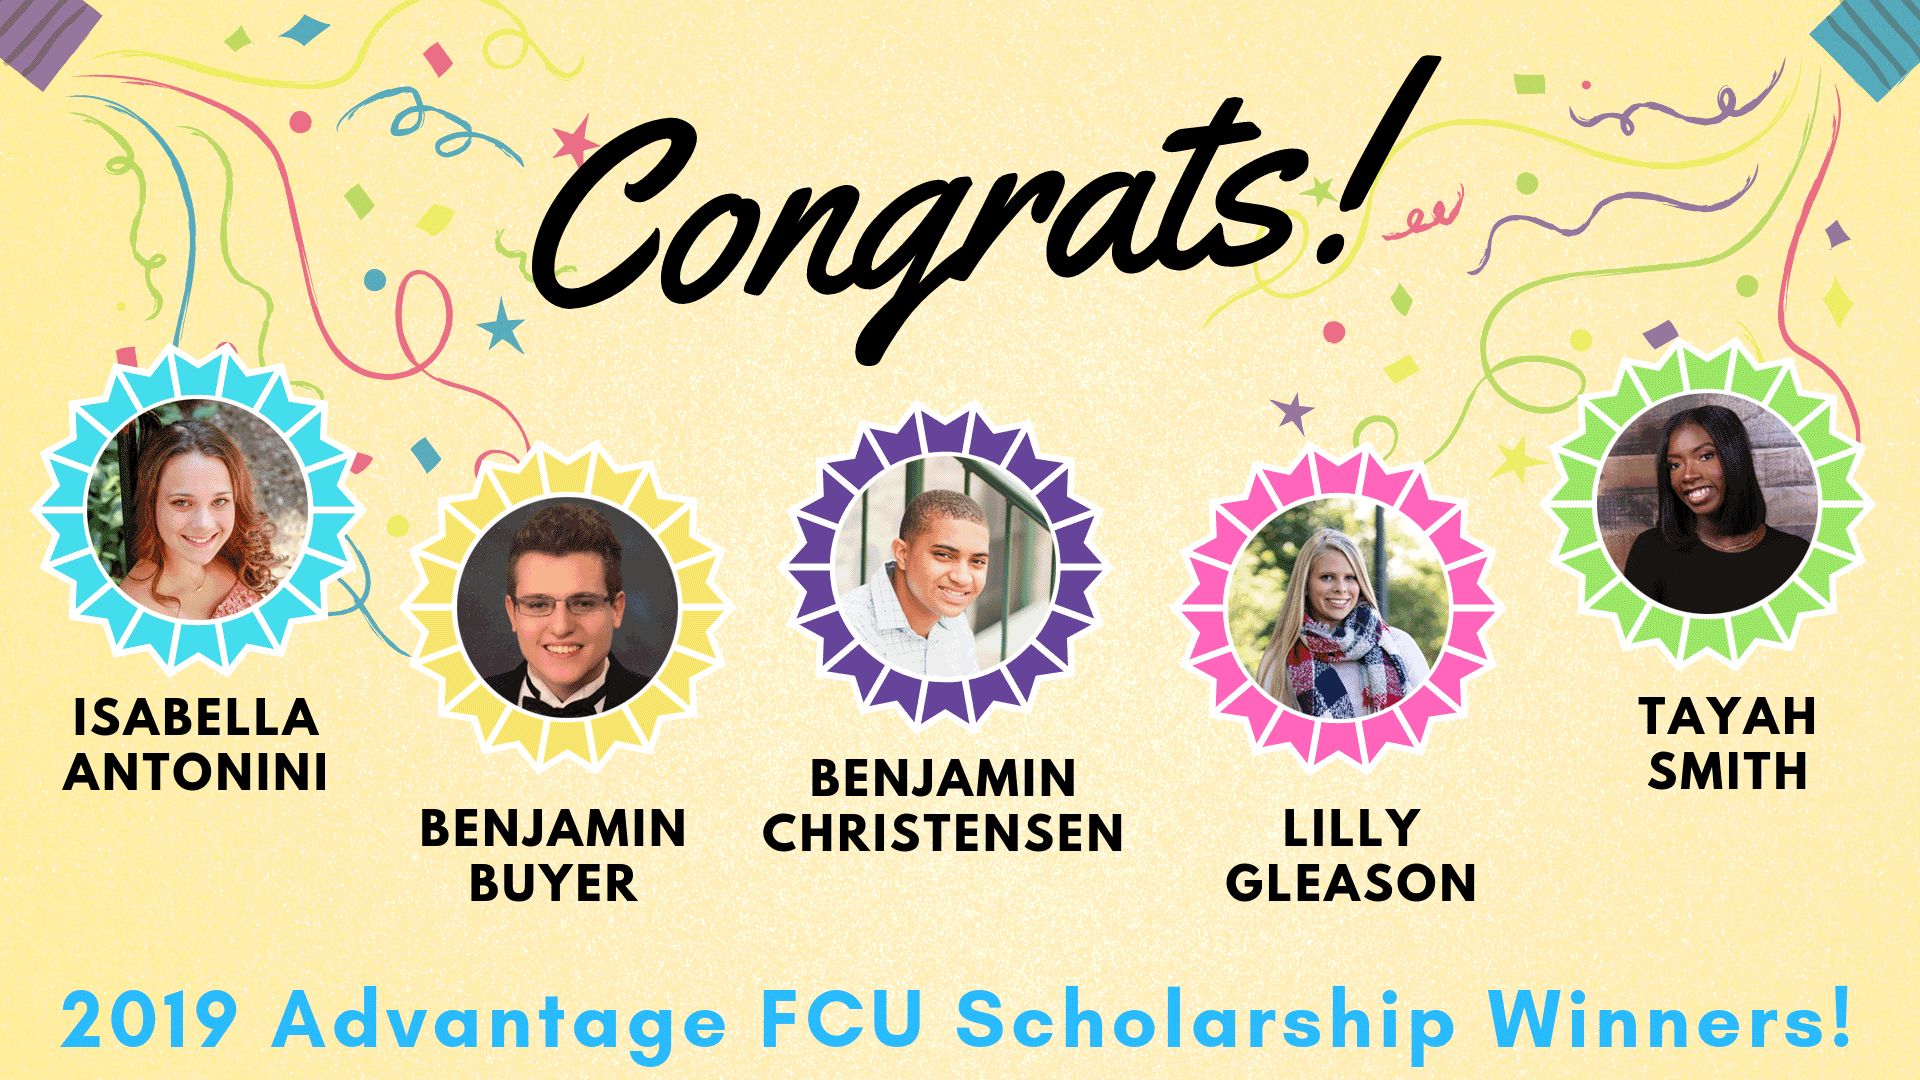 2019 Advantage FCU scholarship winners image